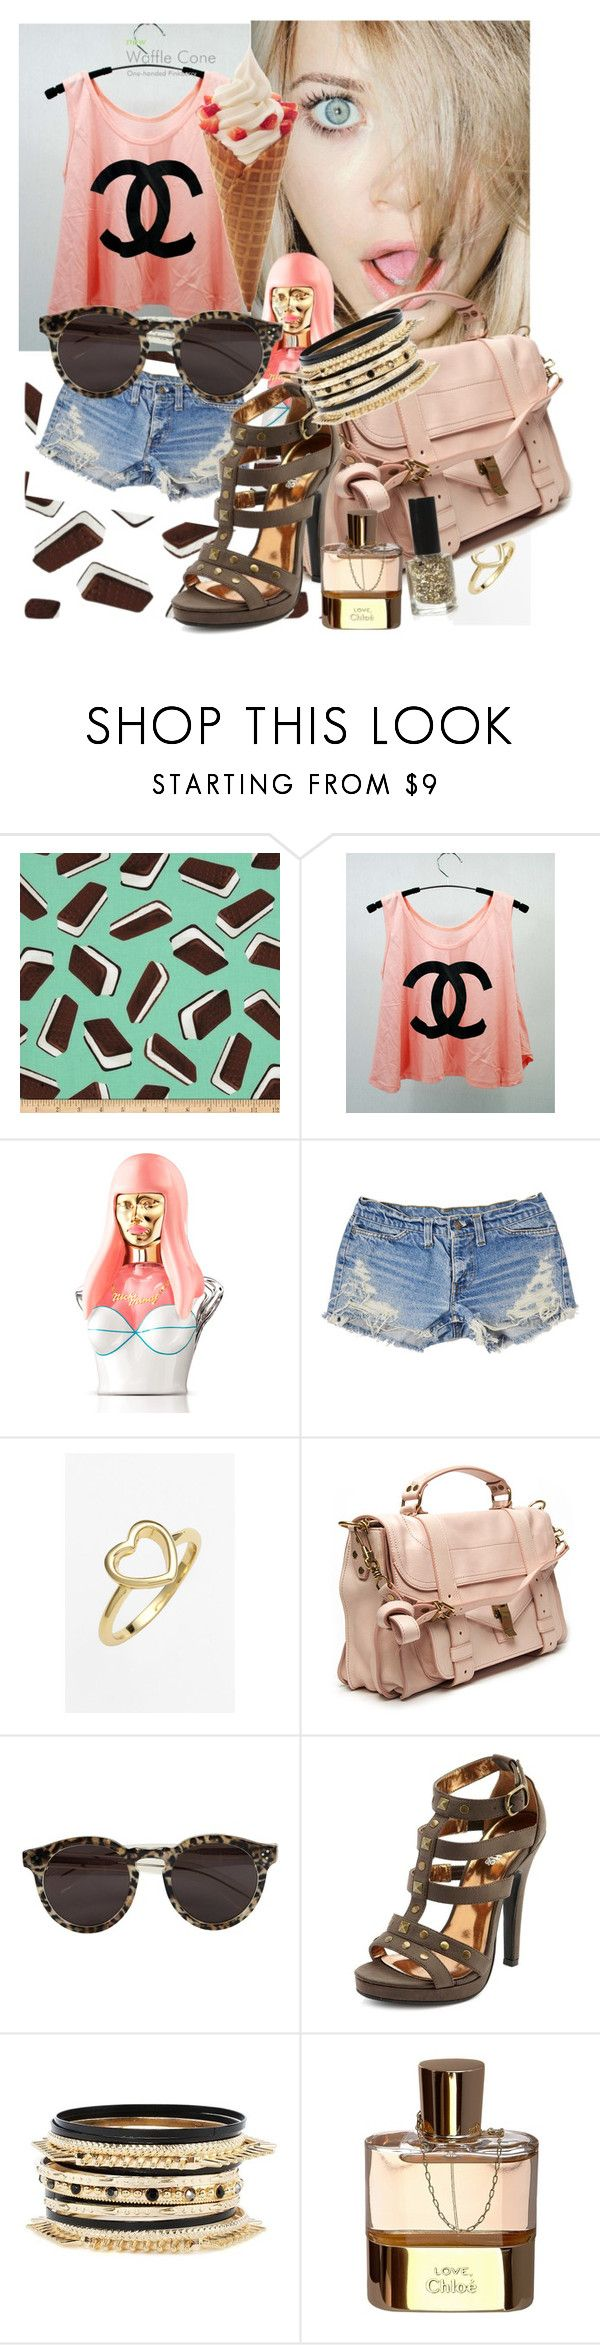 """""""ice cream dates"""" by mashaneva ❤ liked on Polyvore featuring Chanel, Nicki Minaj, Ariella Collection, Proenza Schouler, Illesteva, Charlotte Russe and Chloé"""